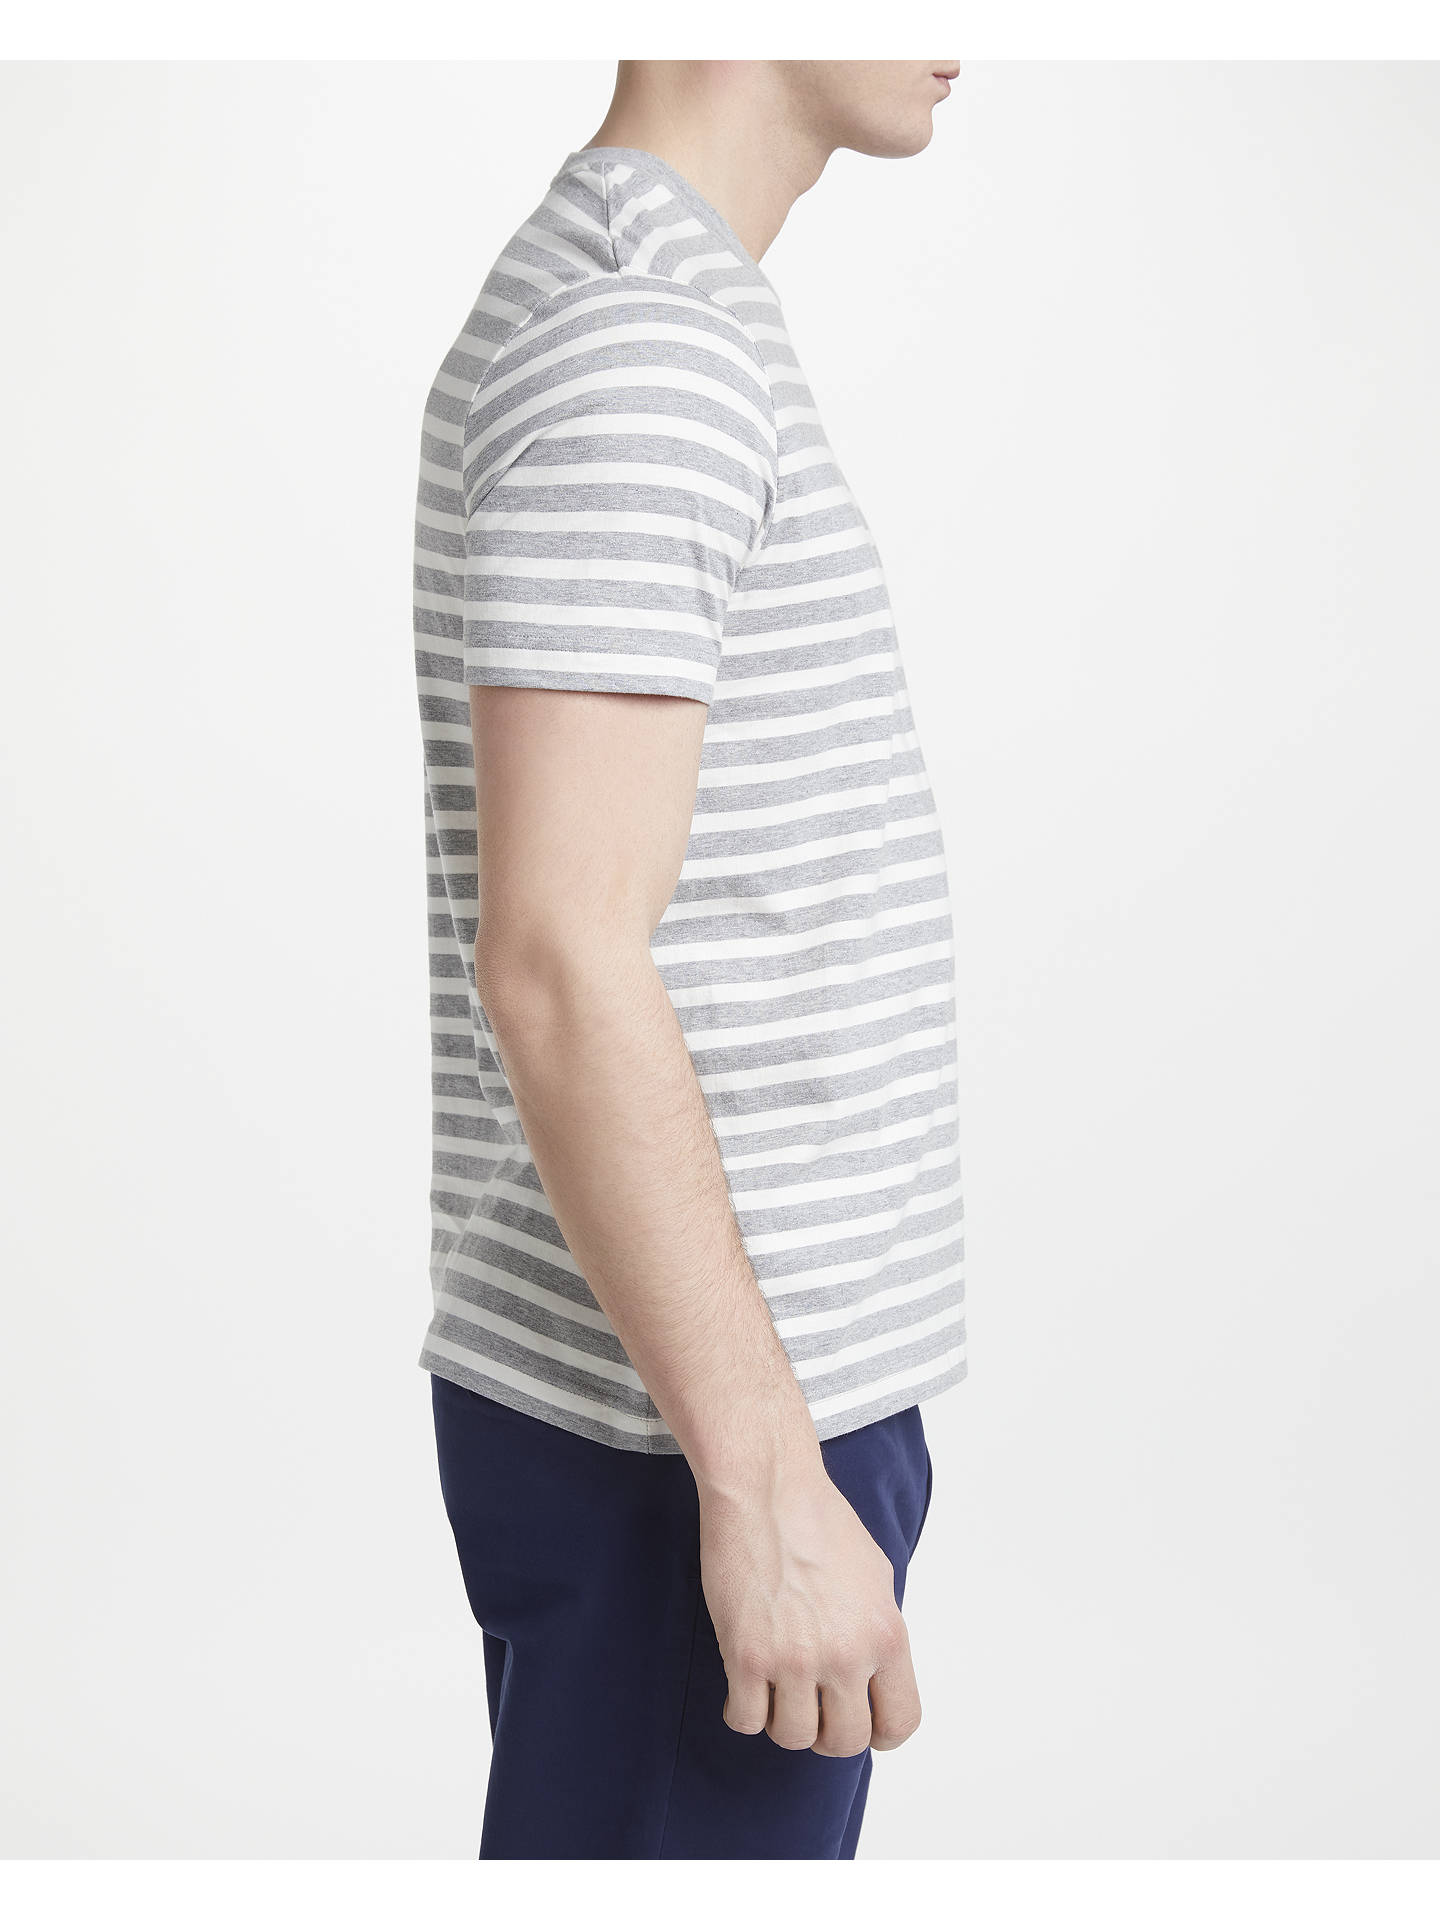 Buy John Lewis & Partners Breton Stripe T-Shirt, Grey, S Online at johnlewis.com